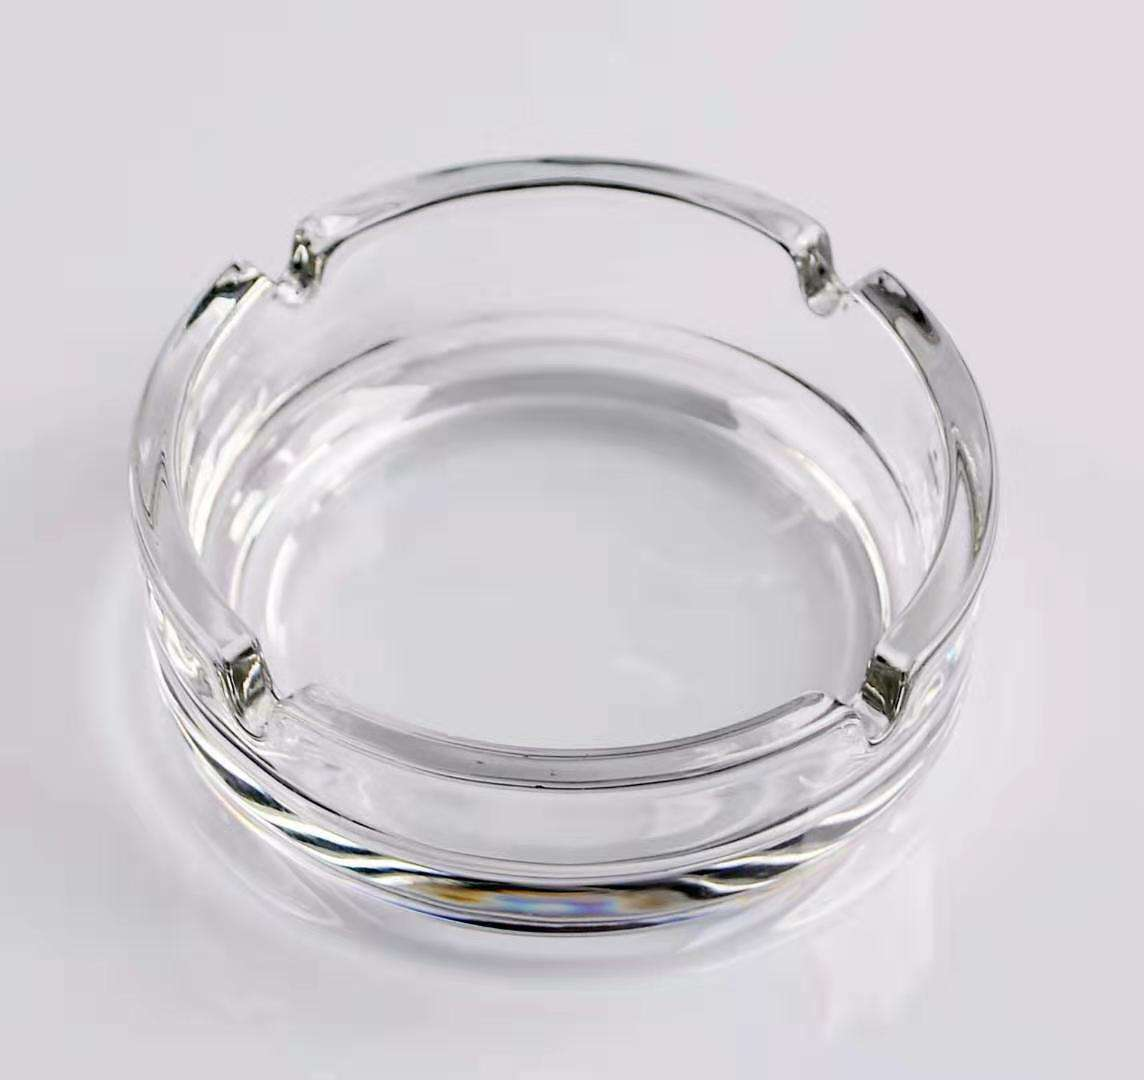 Wholesale High Quality Round Luxury Crystal Glass Ashtrays For Business Gift